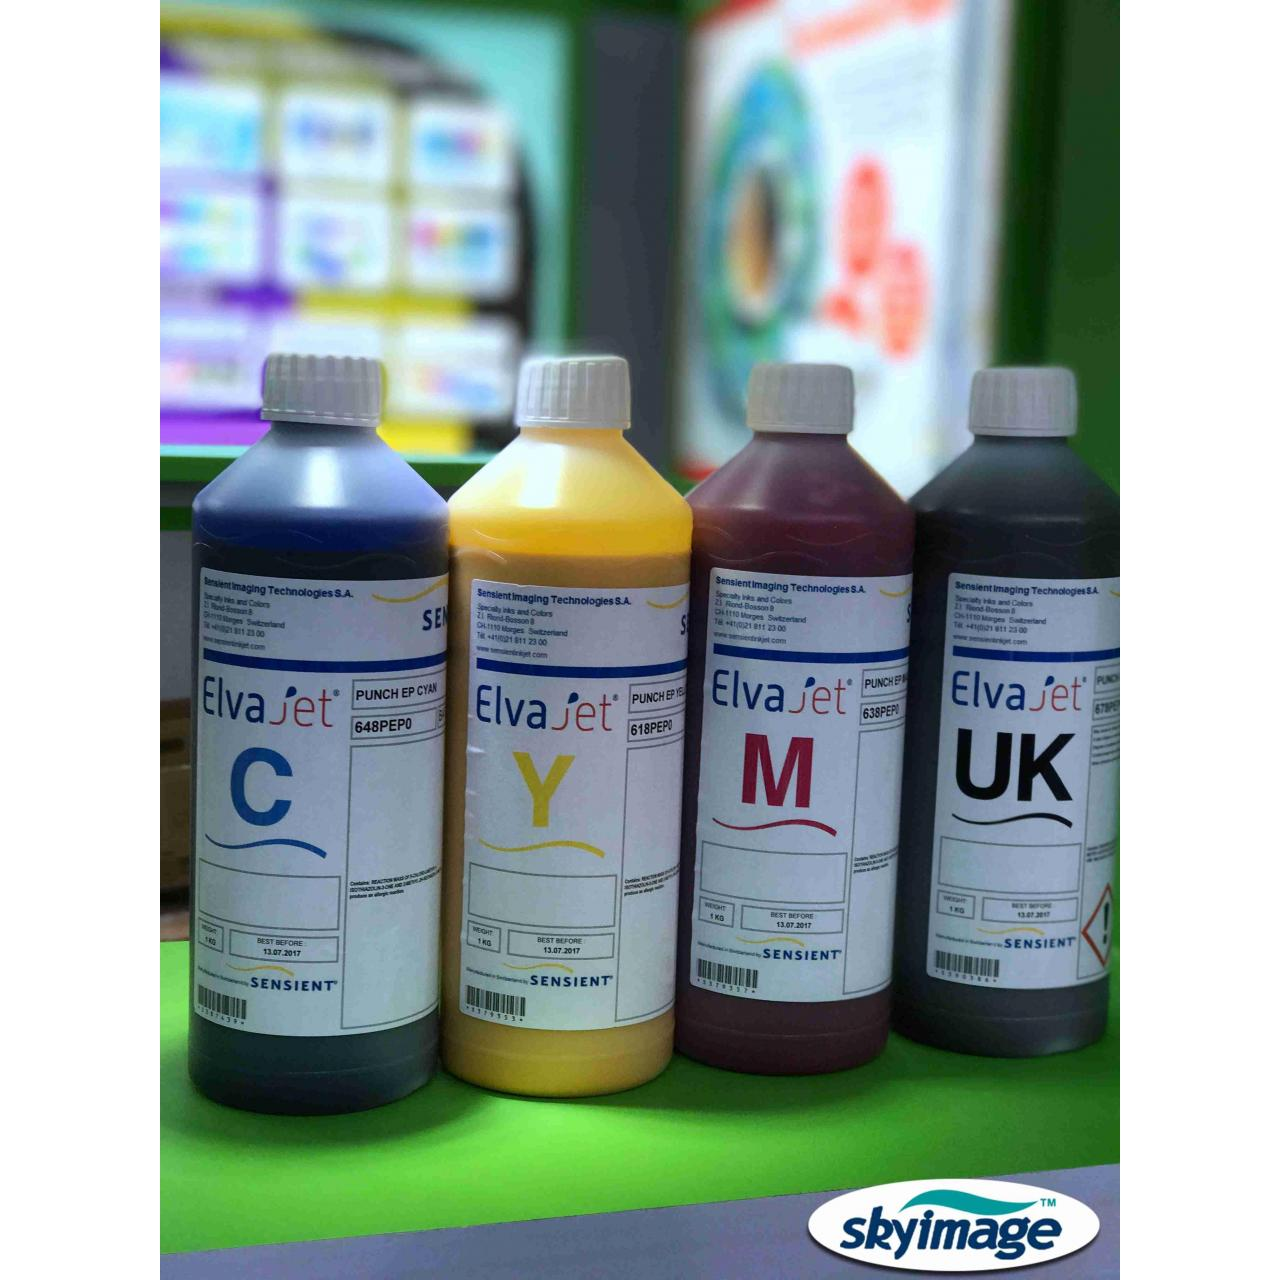 European Sensient ElvaJet Punch Sublimation Ink Manufactures